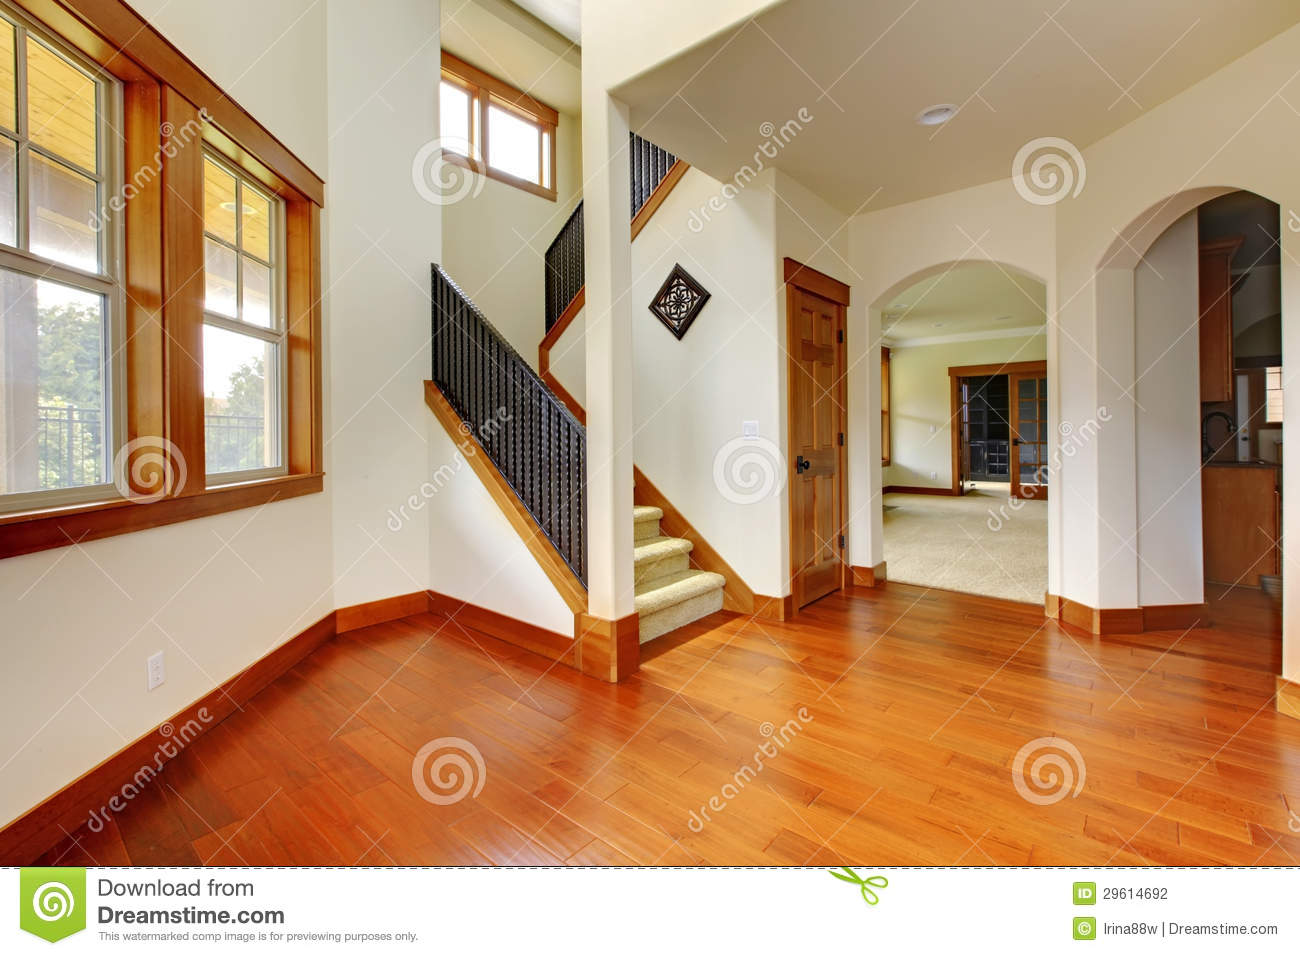 Decoration Voute Interieur Beautiful Home Entrance With Wood Floor New Luxury Home